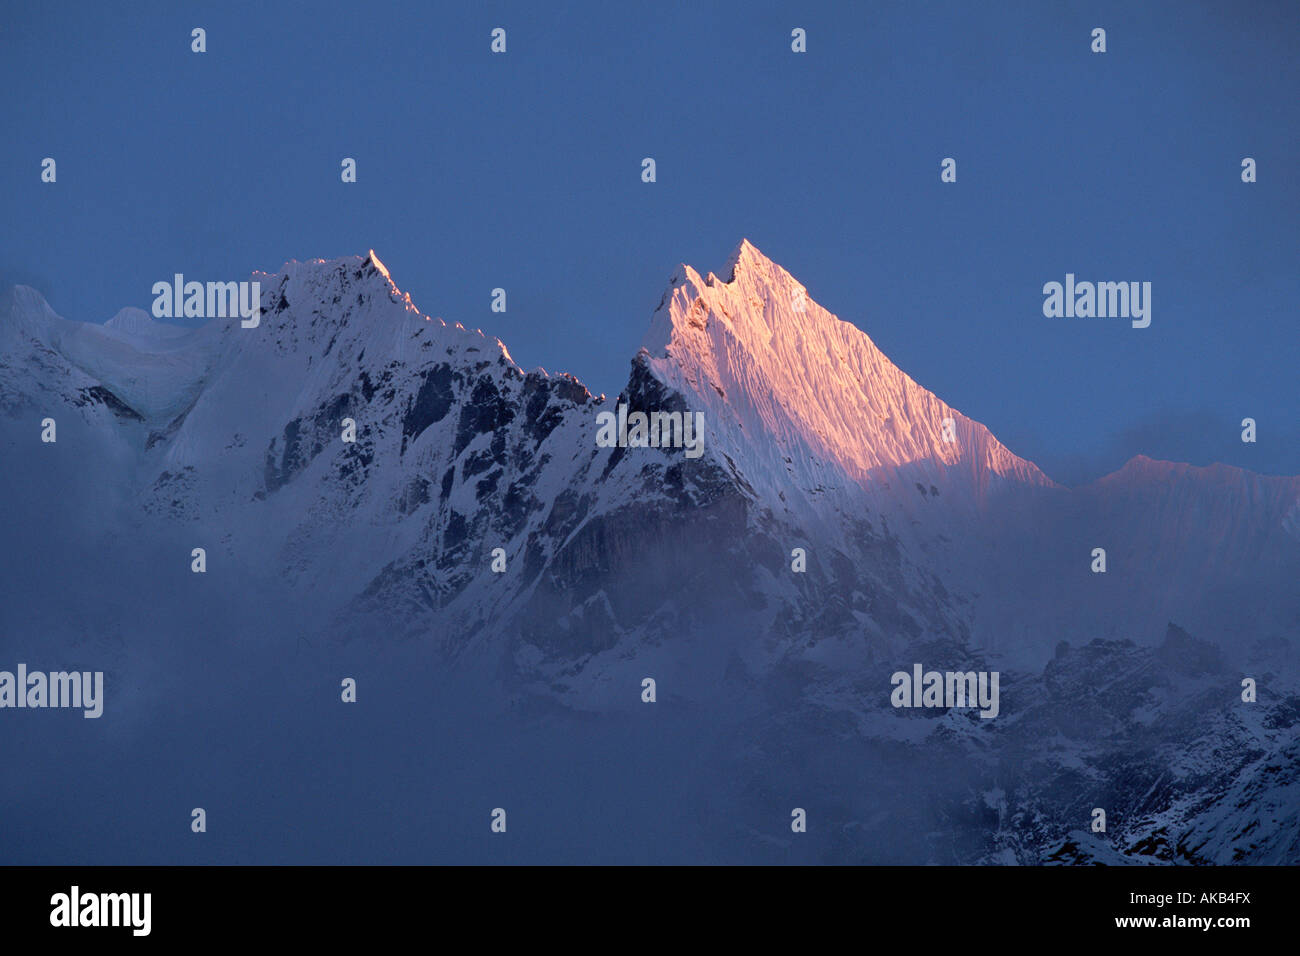 Everest Region, Nepal - Stock Image